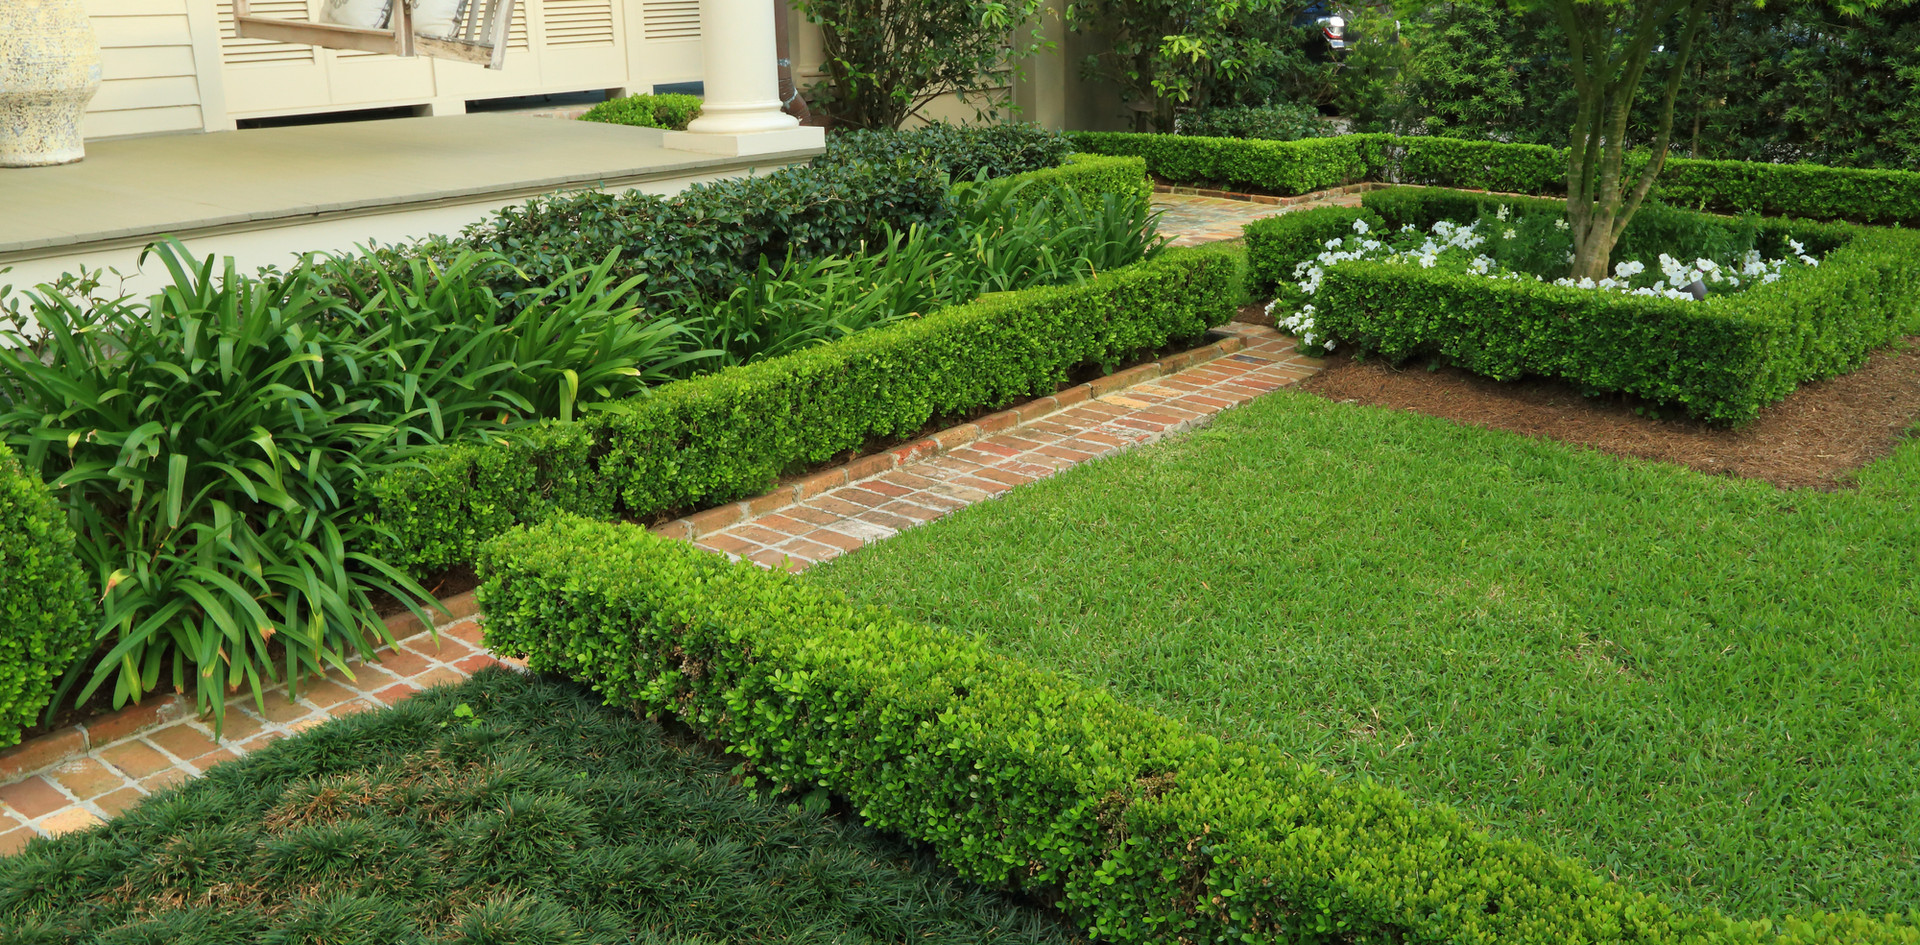 Yard Maintenance Pruning and Mowing